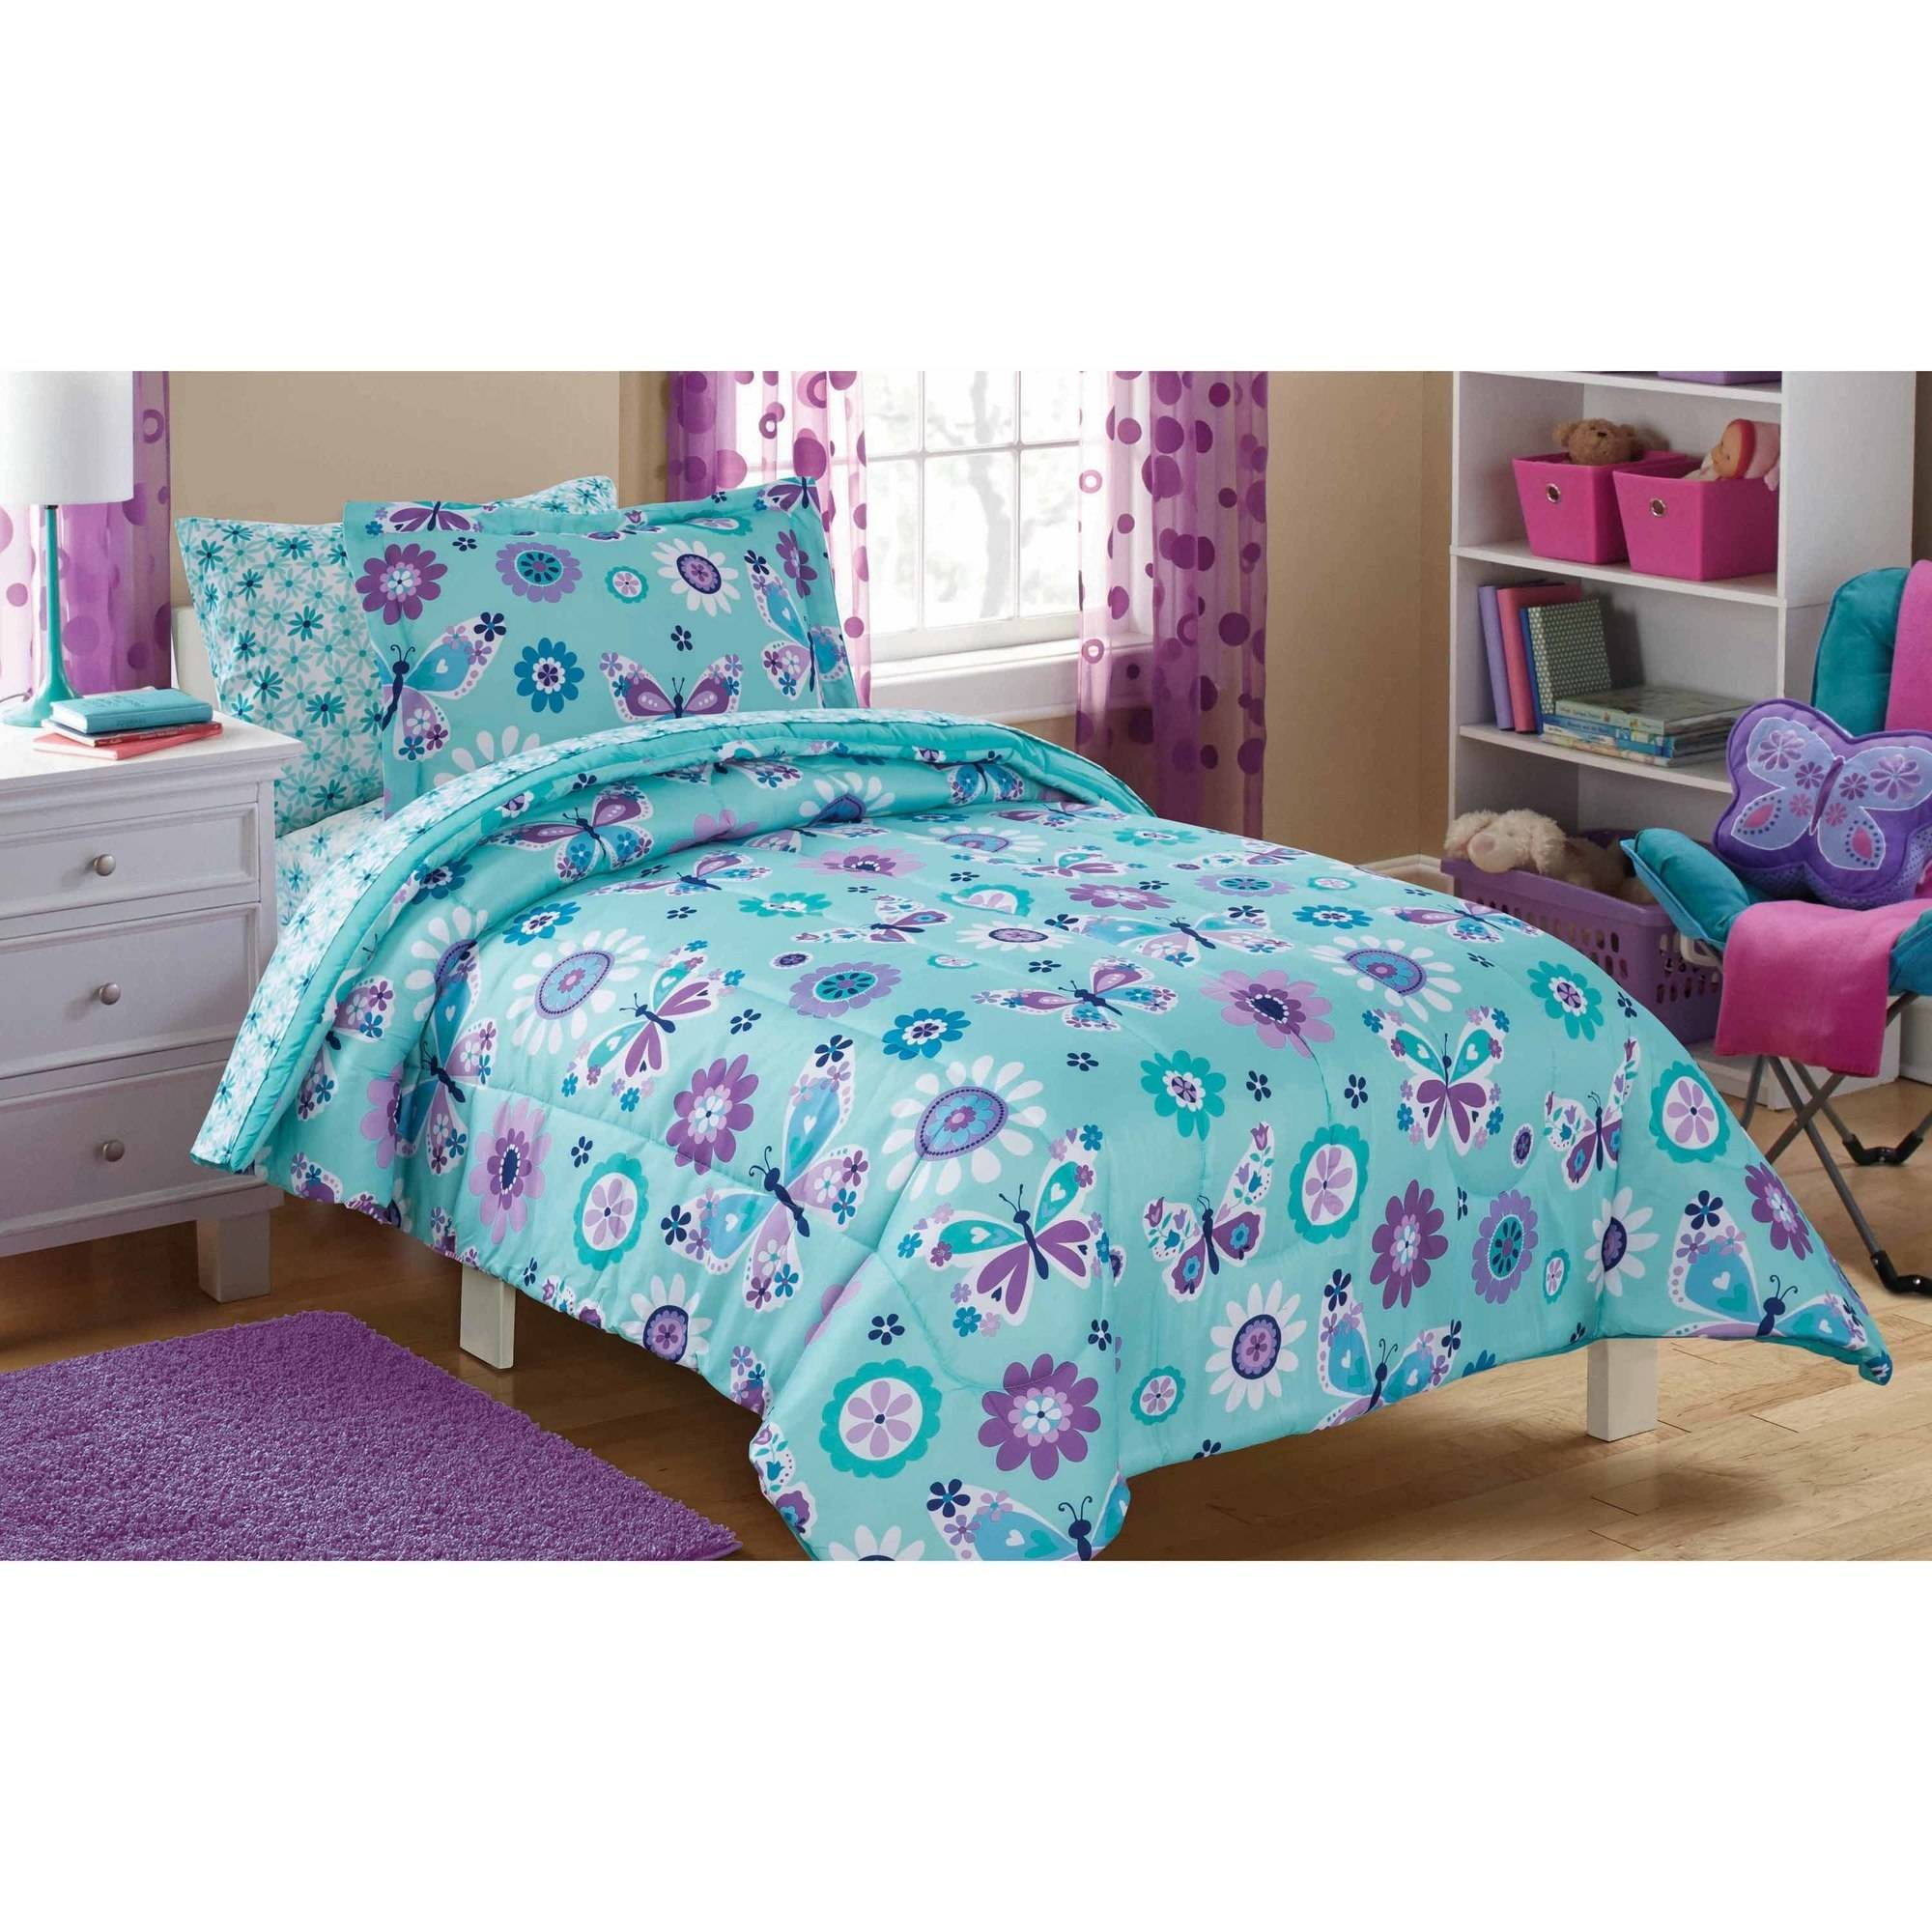 butterfly large queen alexa pink additional set bedding full q p print images elegant damask light comforter